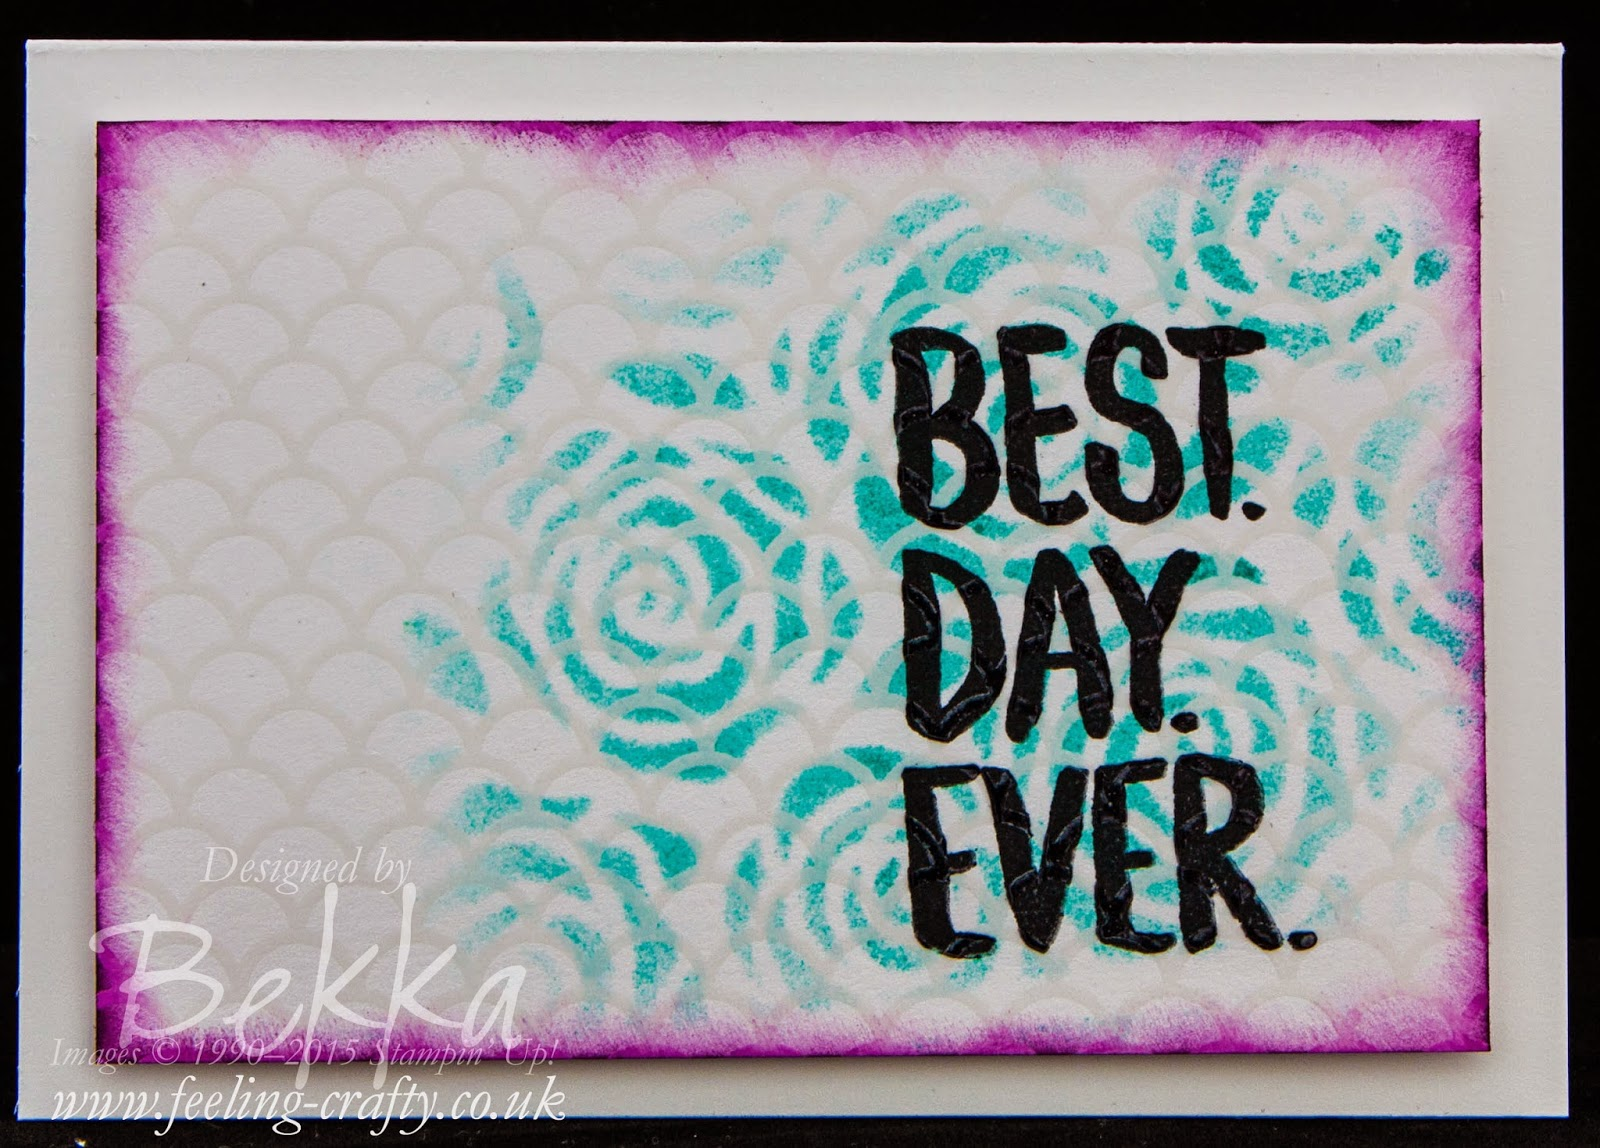 Best Day Ever Card - Check Out this great blog for lots of ideas and shopping